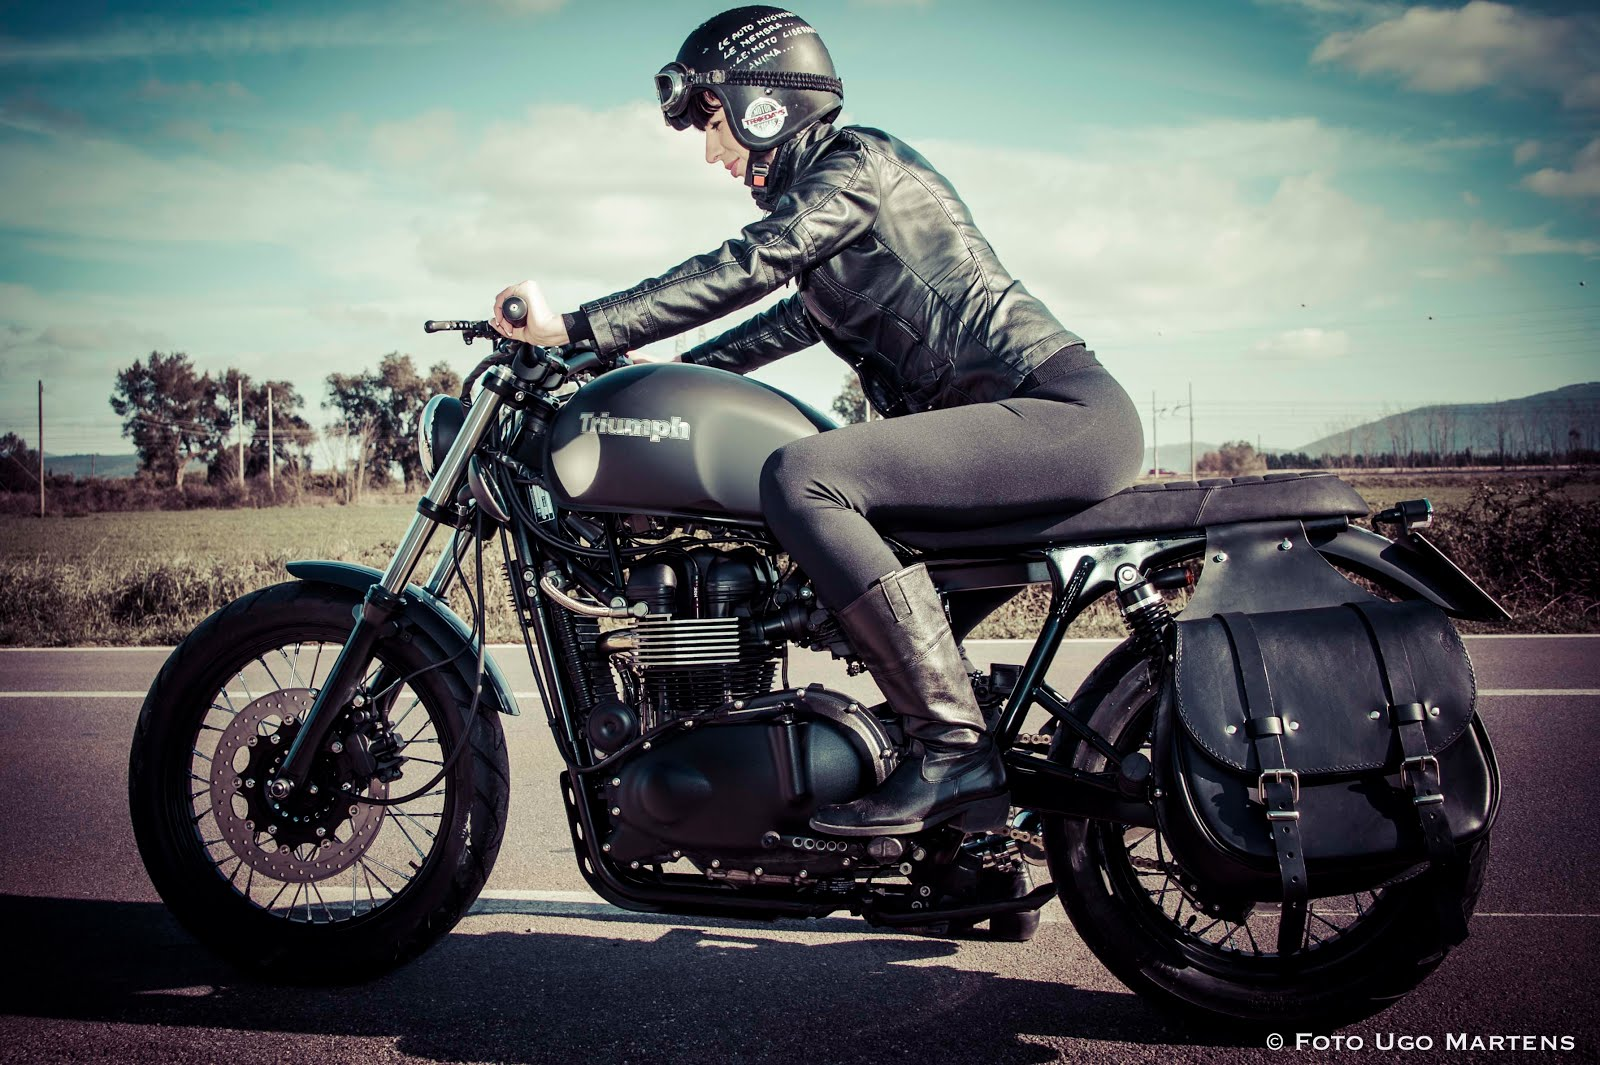 Tattoo Anime Girl Wallpaper Triumph Bonneville Girl Bikebrewers Com